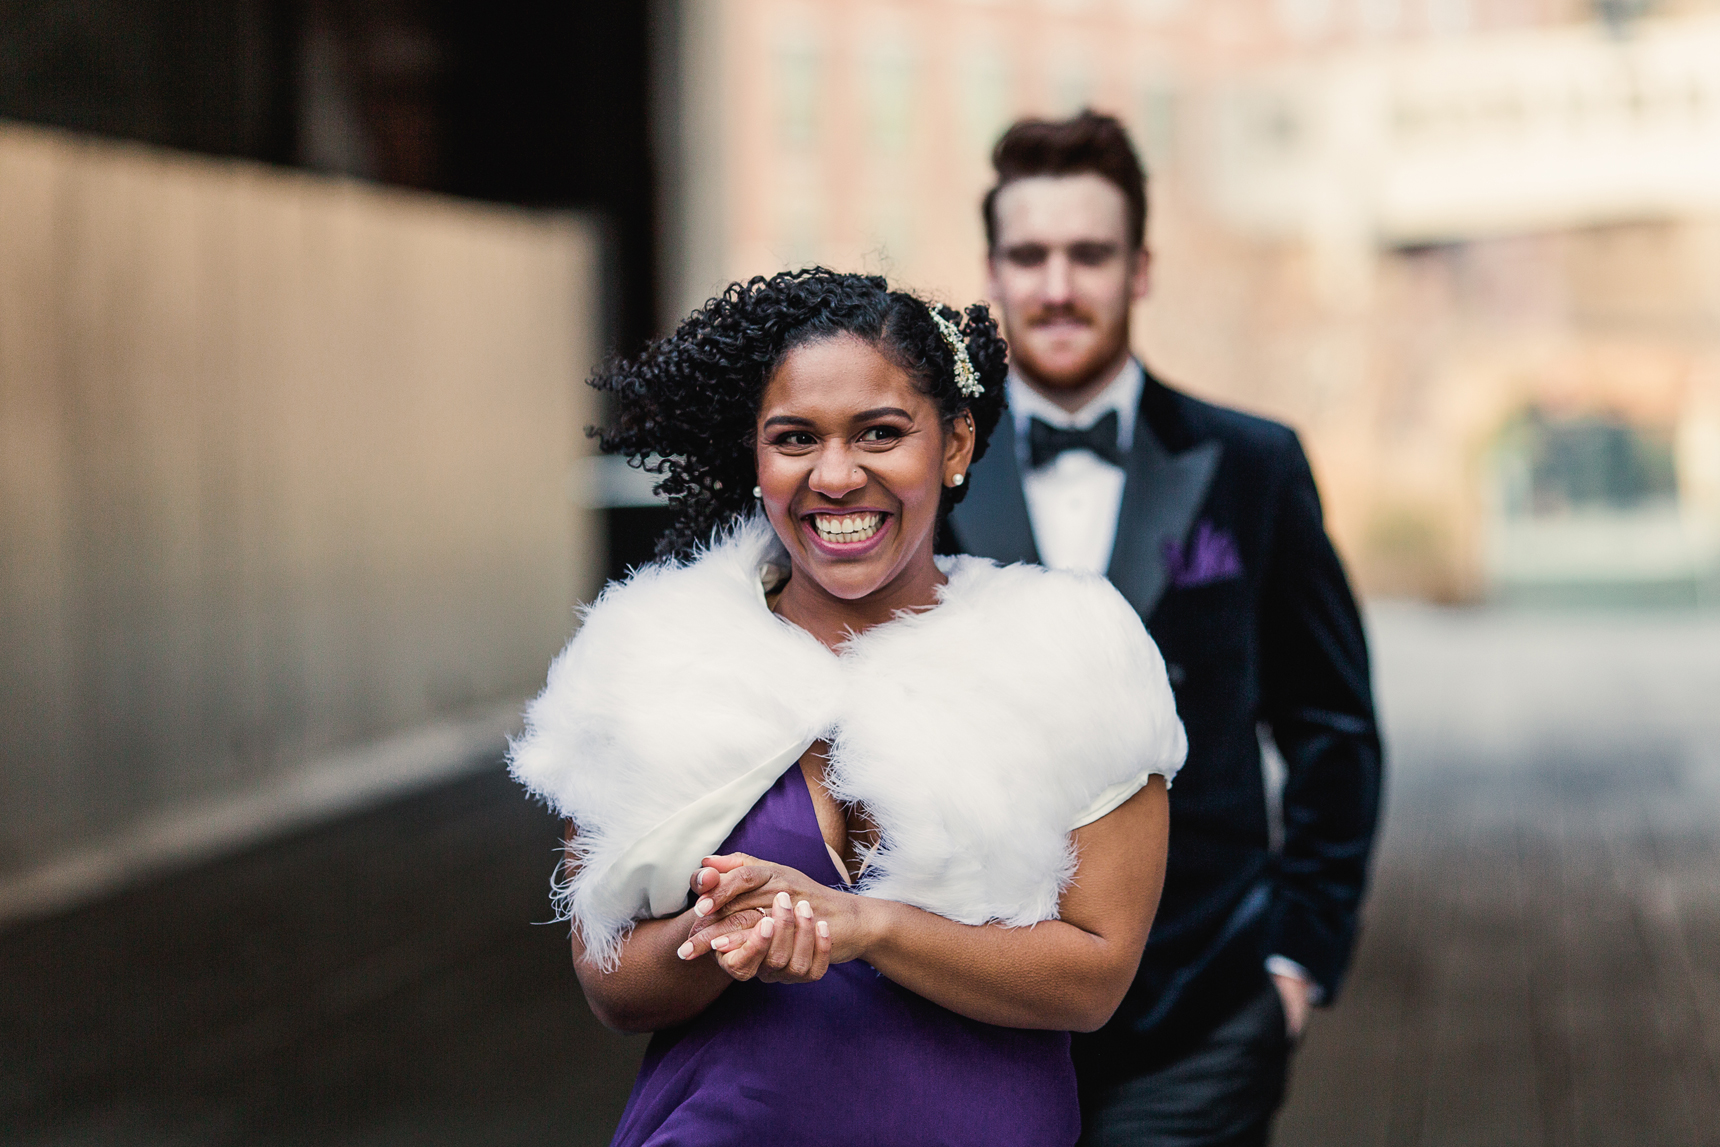 KP_BrooklynWinery_Wedding_NewYork_Photographer045.jpg